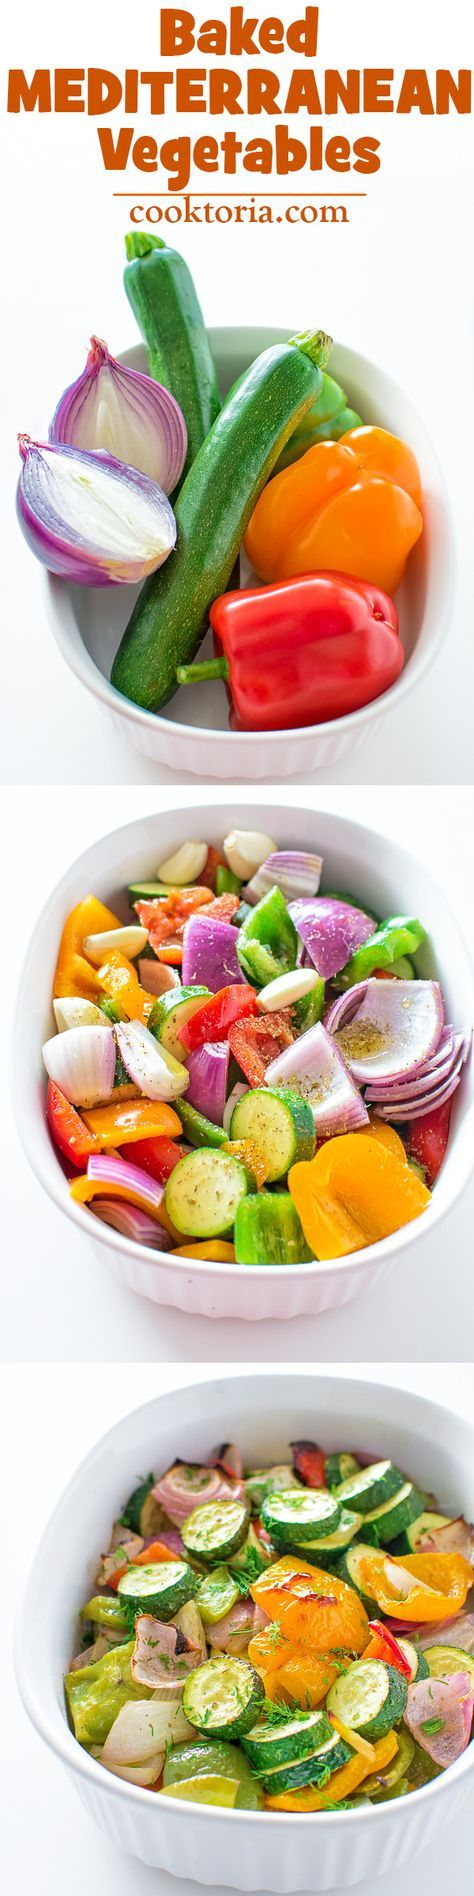 A succulent combination of bell peppers, onion and zucchini baked to perfection with Mediterranean spices! This is a must-try vegetable side dish! ❤ COOKTORIA.COM